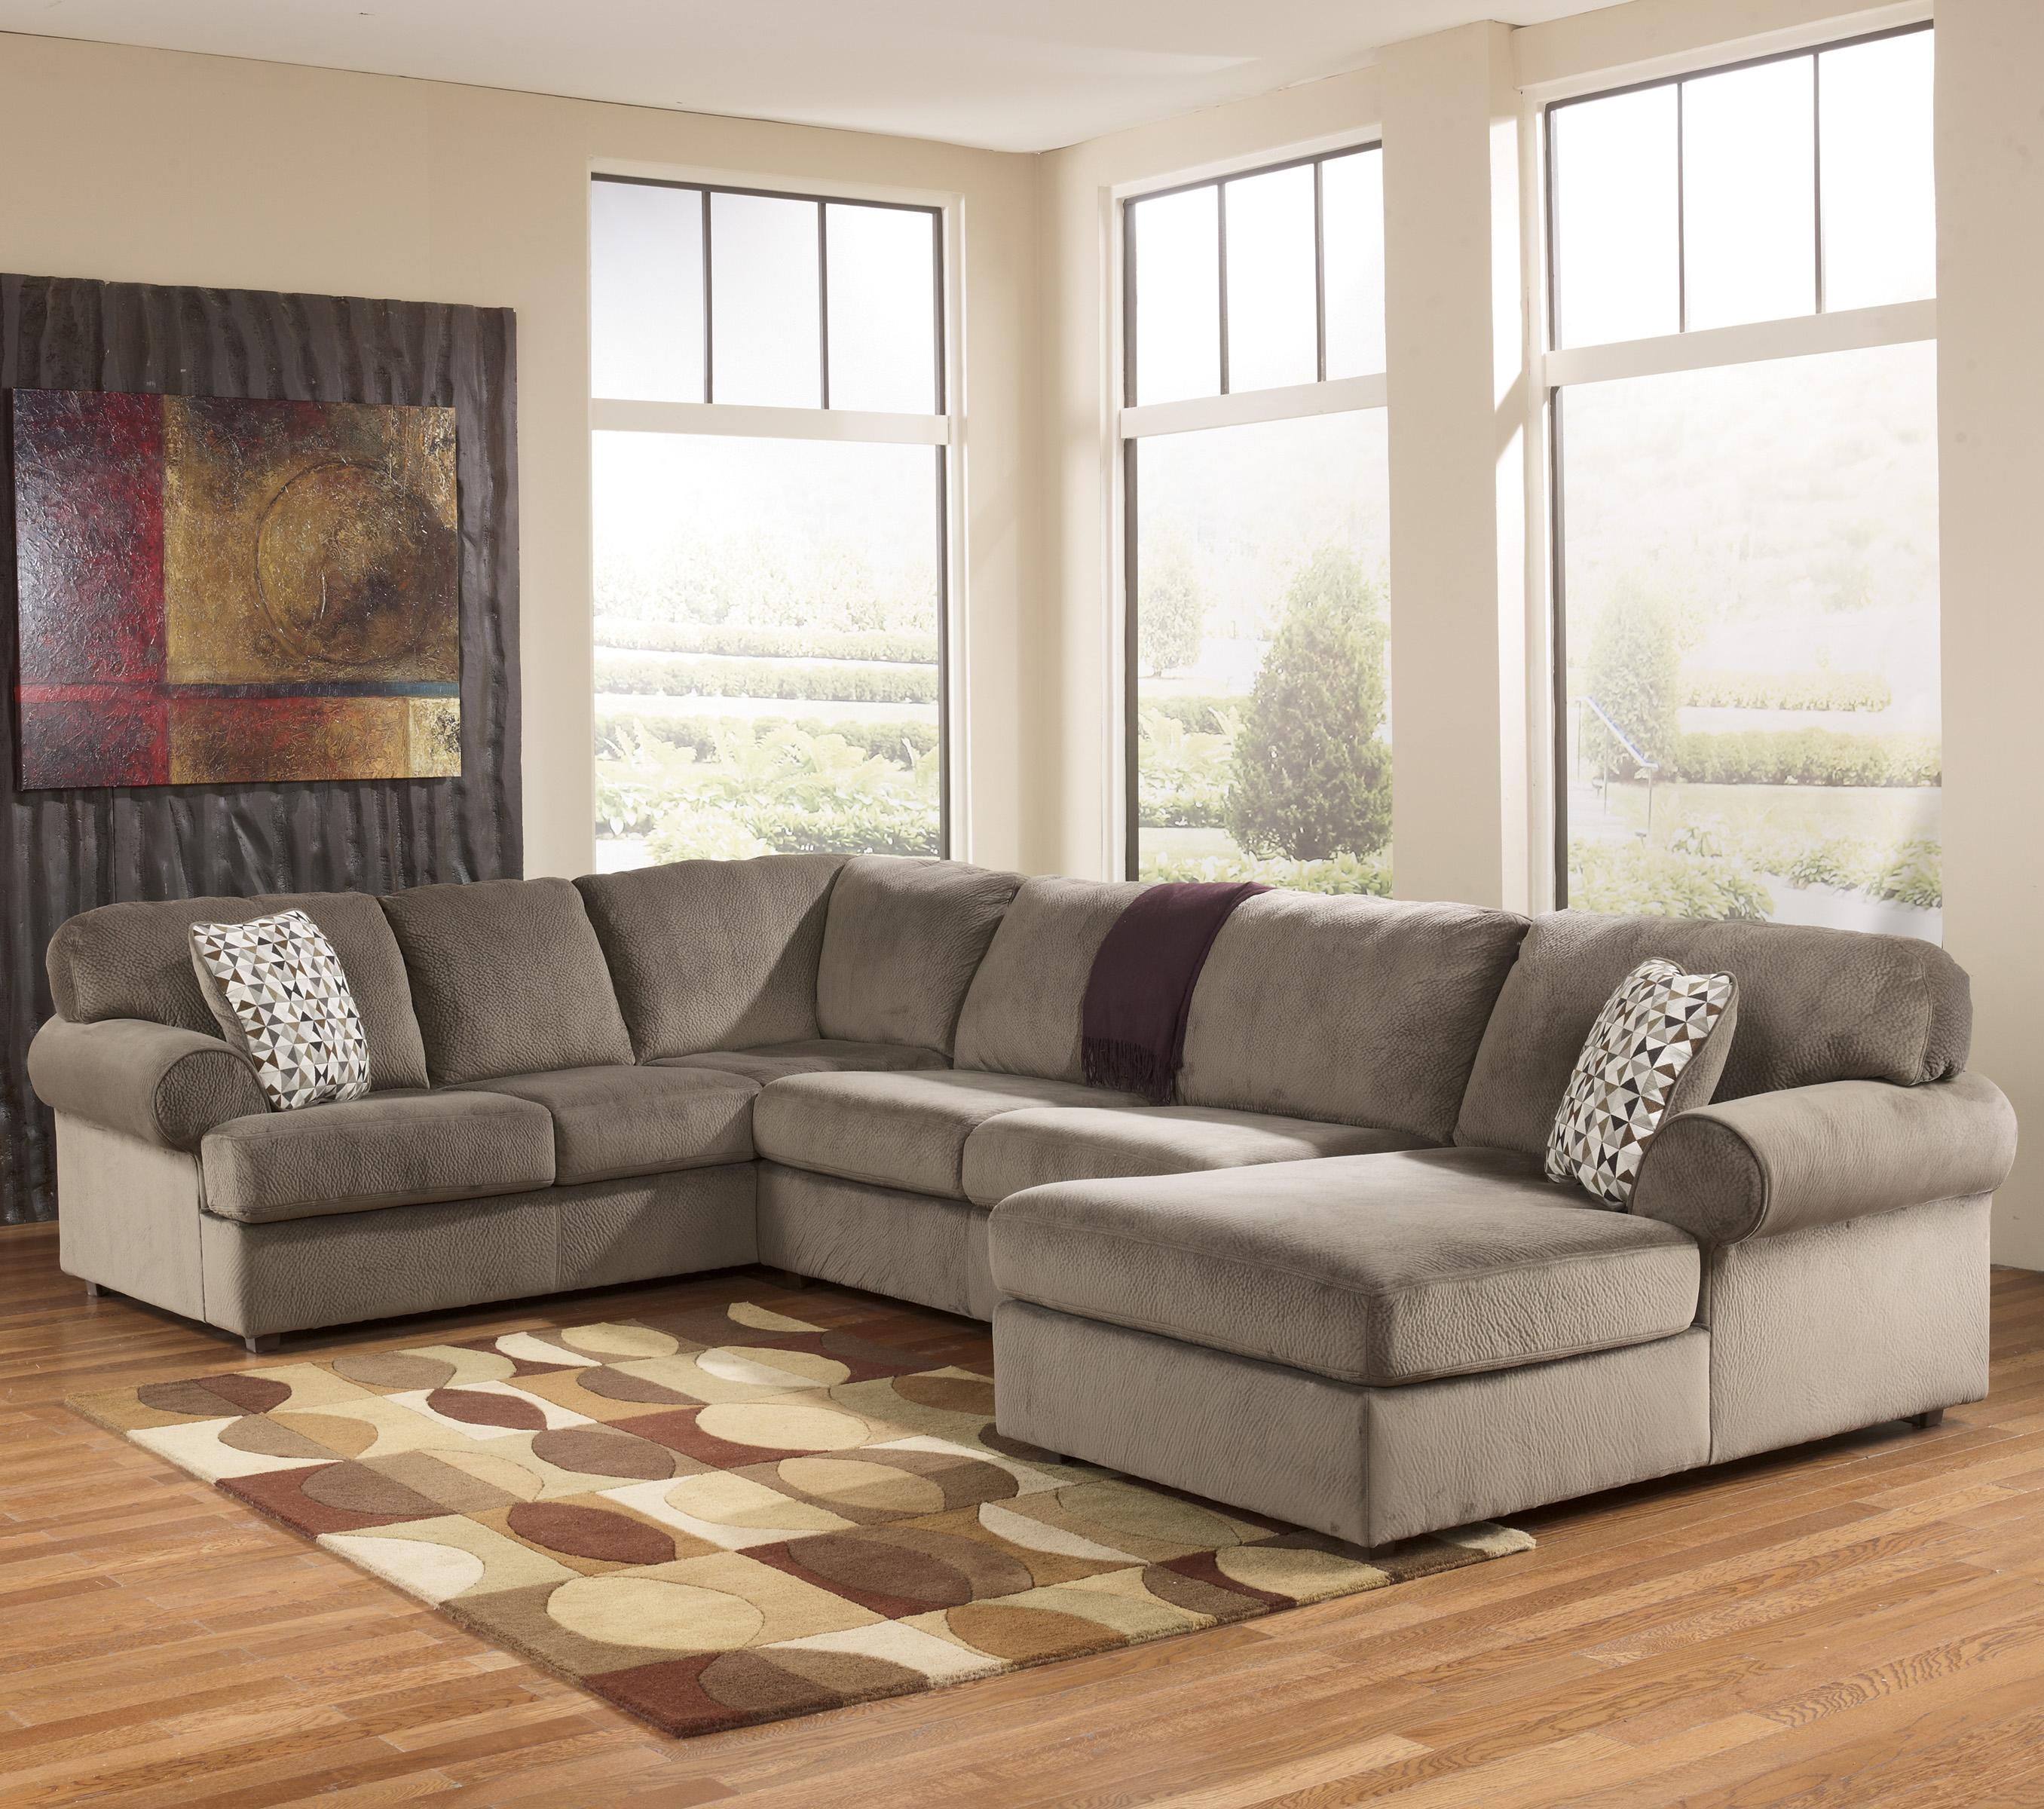 Signature design by ashley jessa place dune casual for Ashley chaise sectional